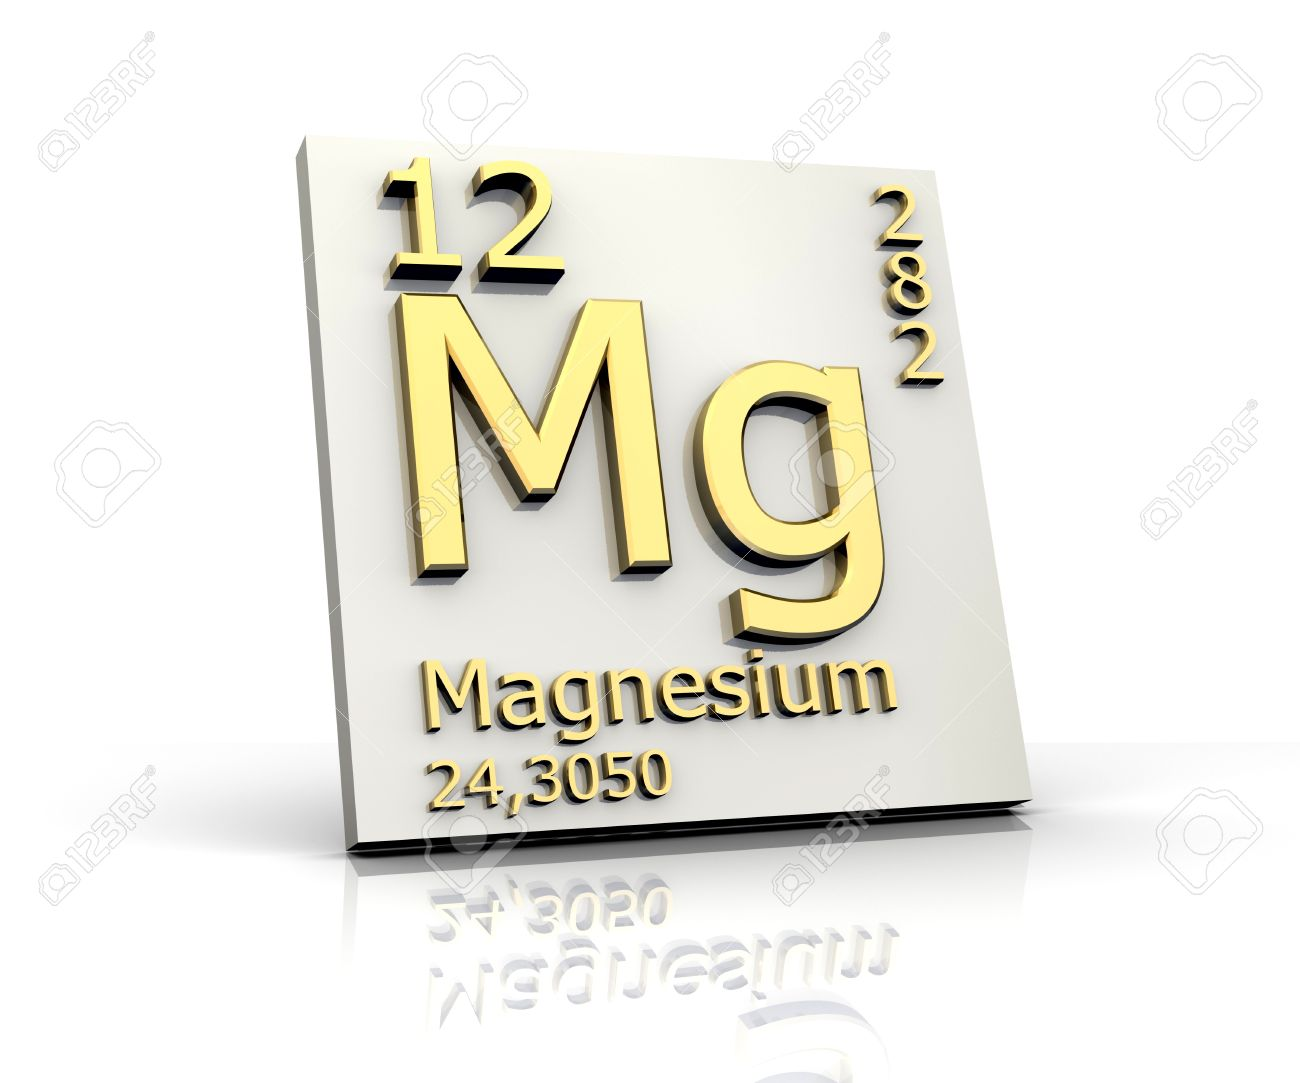 Magnesium form periodic table of elements stock photo picture and magnesium form periodic table of elements stock photo 4315591 gamestrikefo Gallery